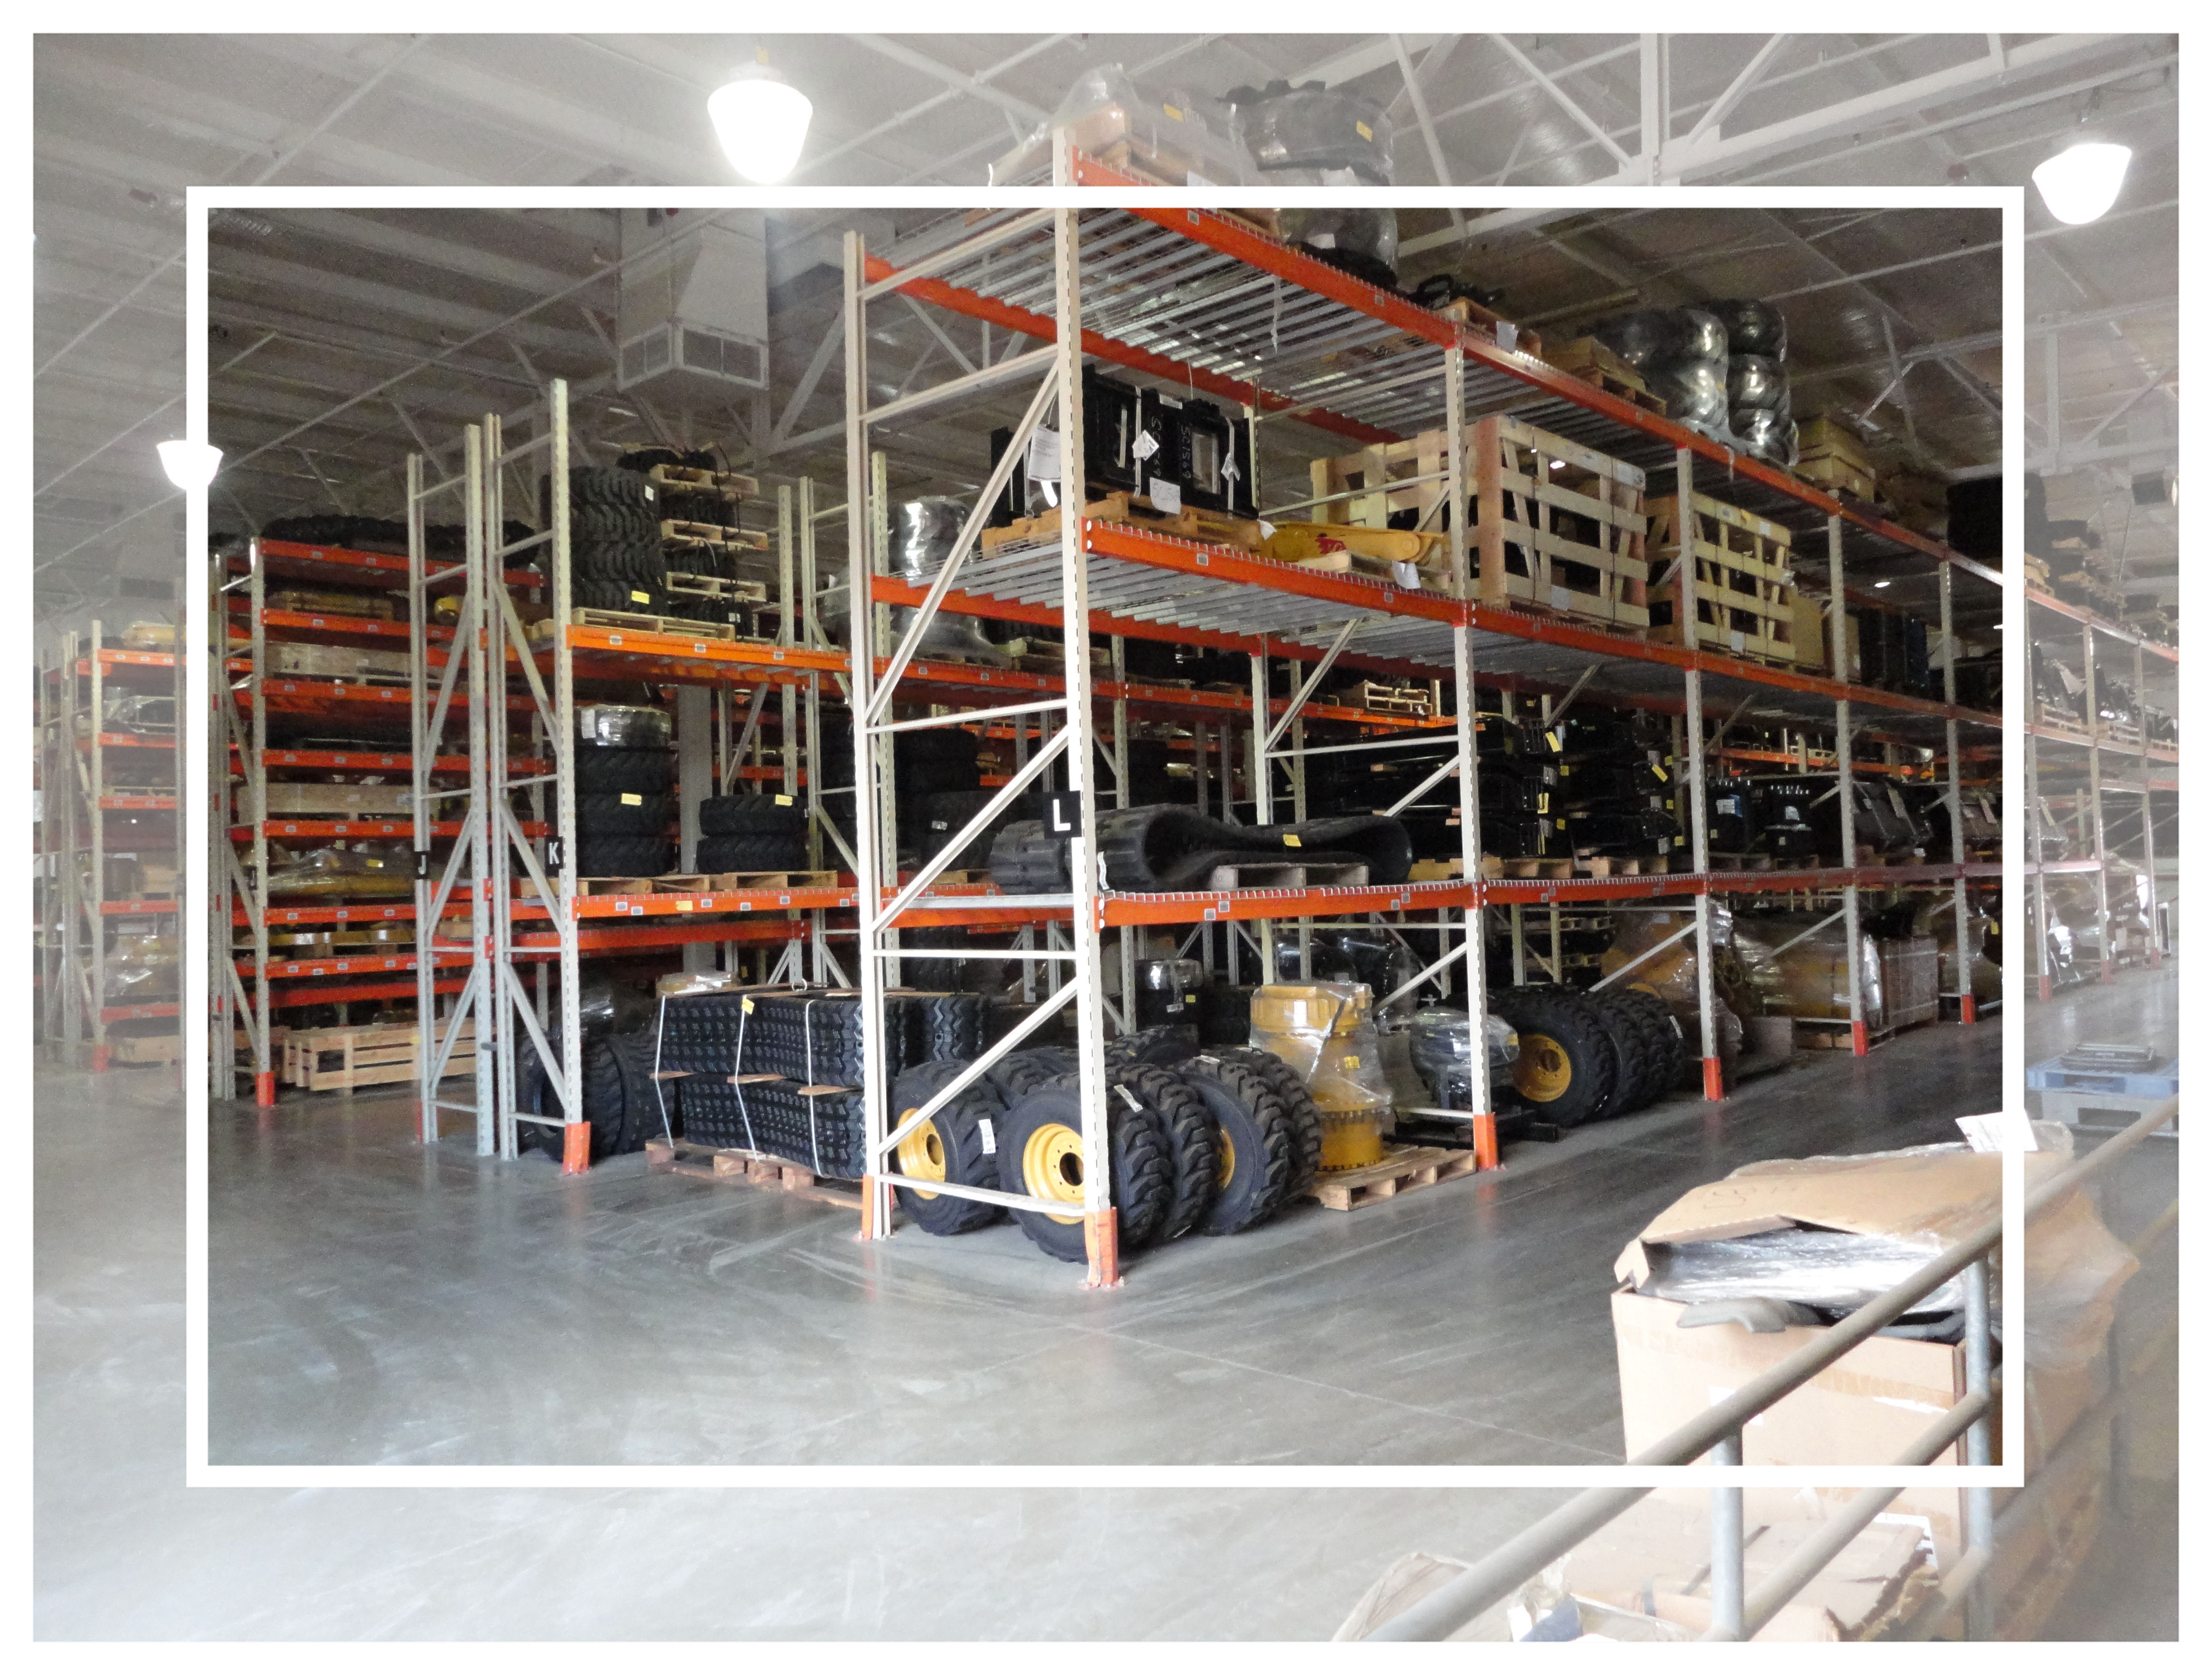 spartan-equipment-warehouse-1.jpg